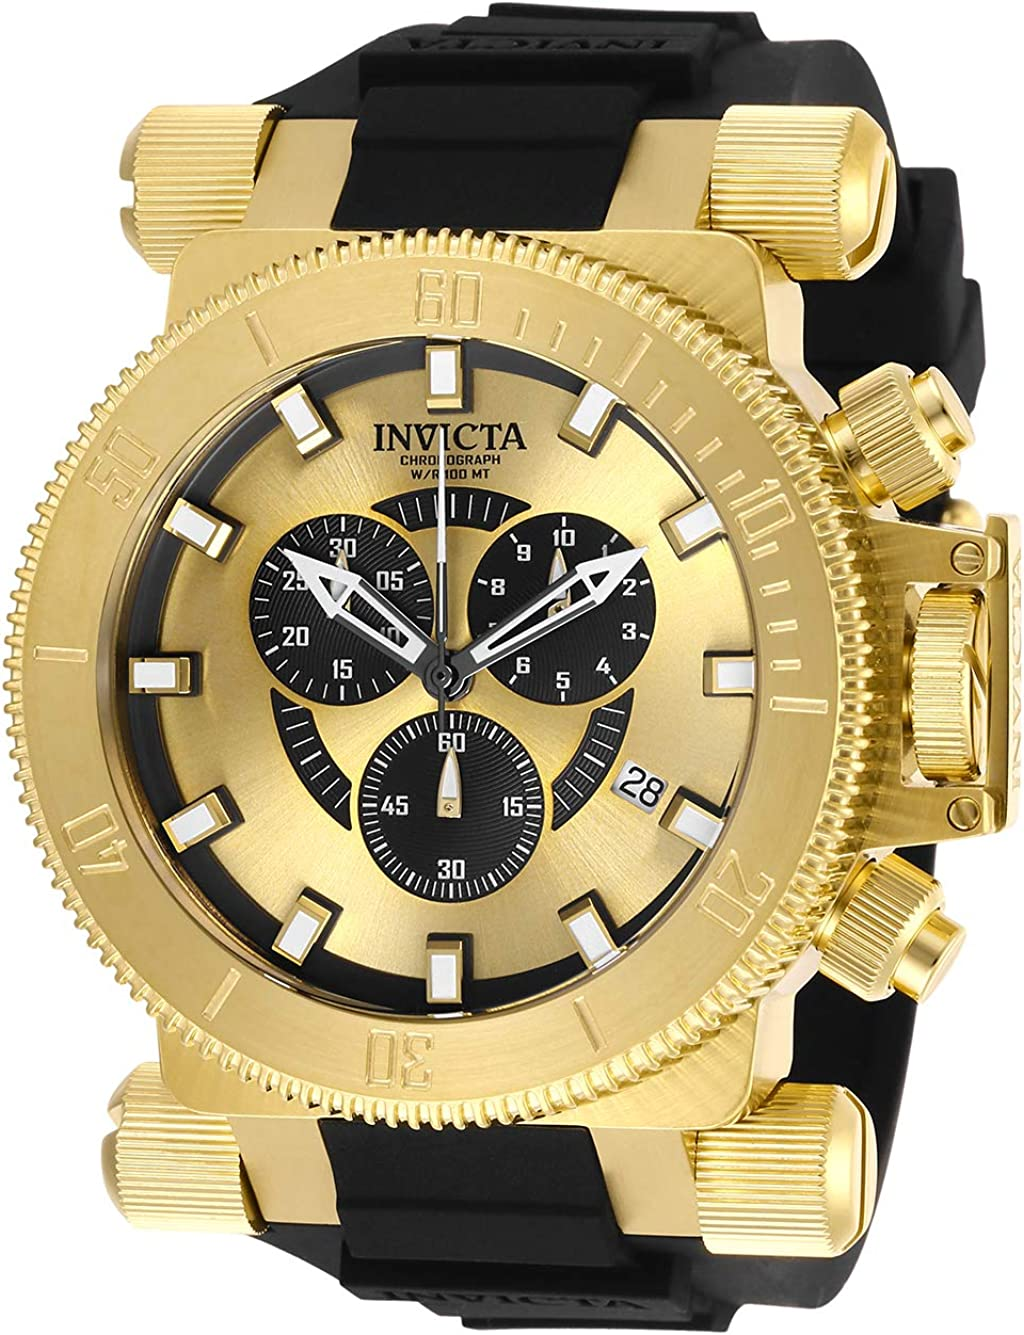 Invicta Men s Coalition Forces Stainless Steel Analog Quartz Watch with Silicone Strap, Black, 34.5 Model 27844